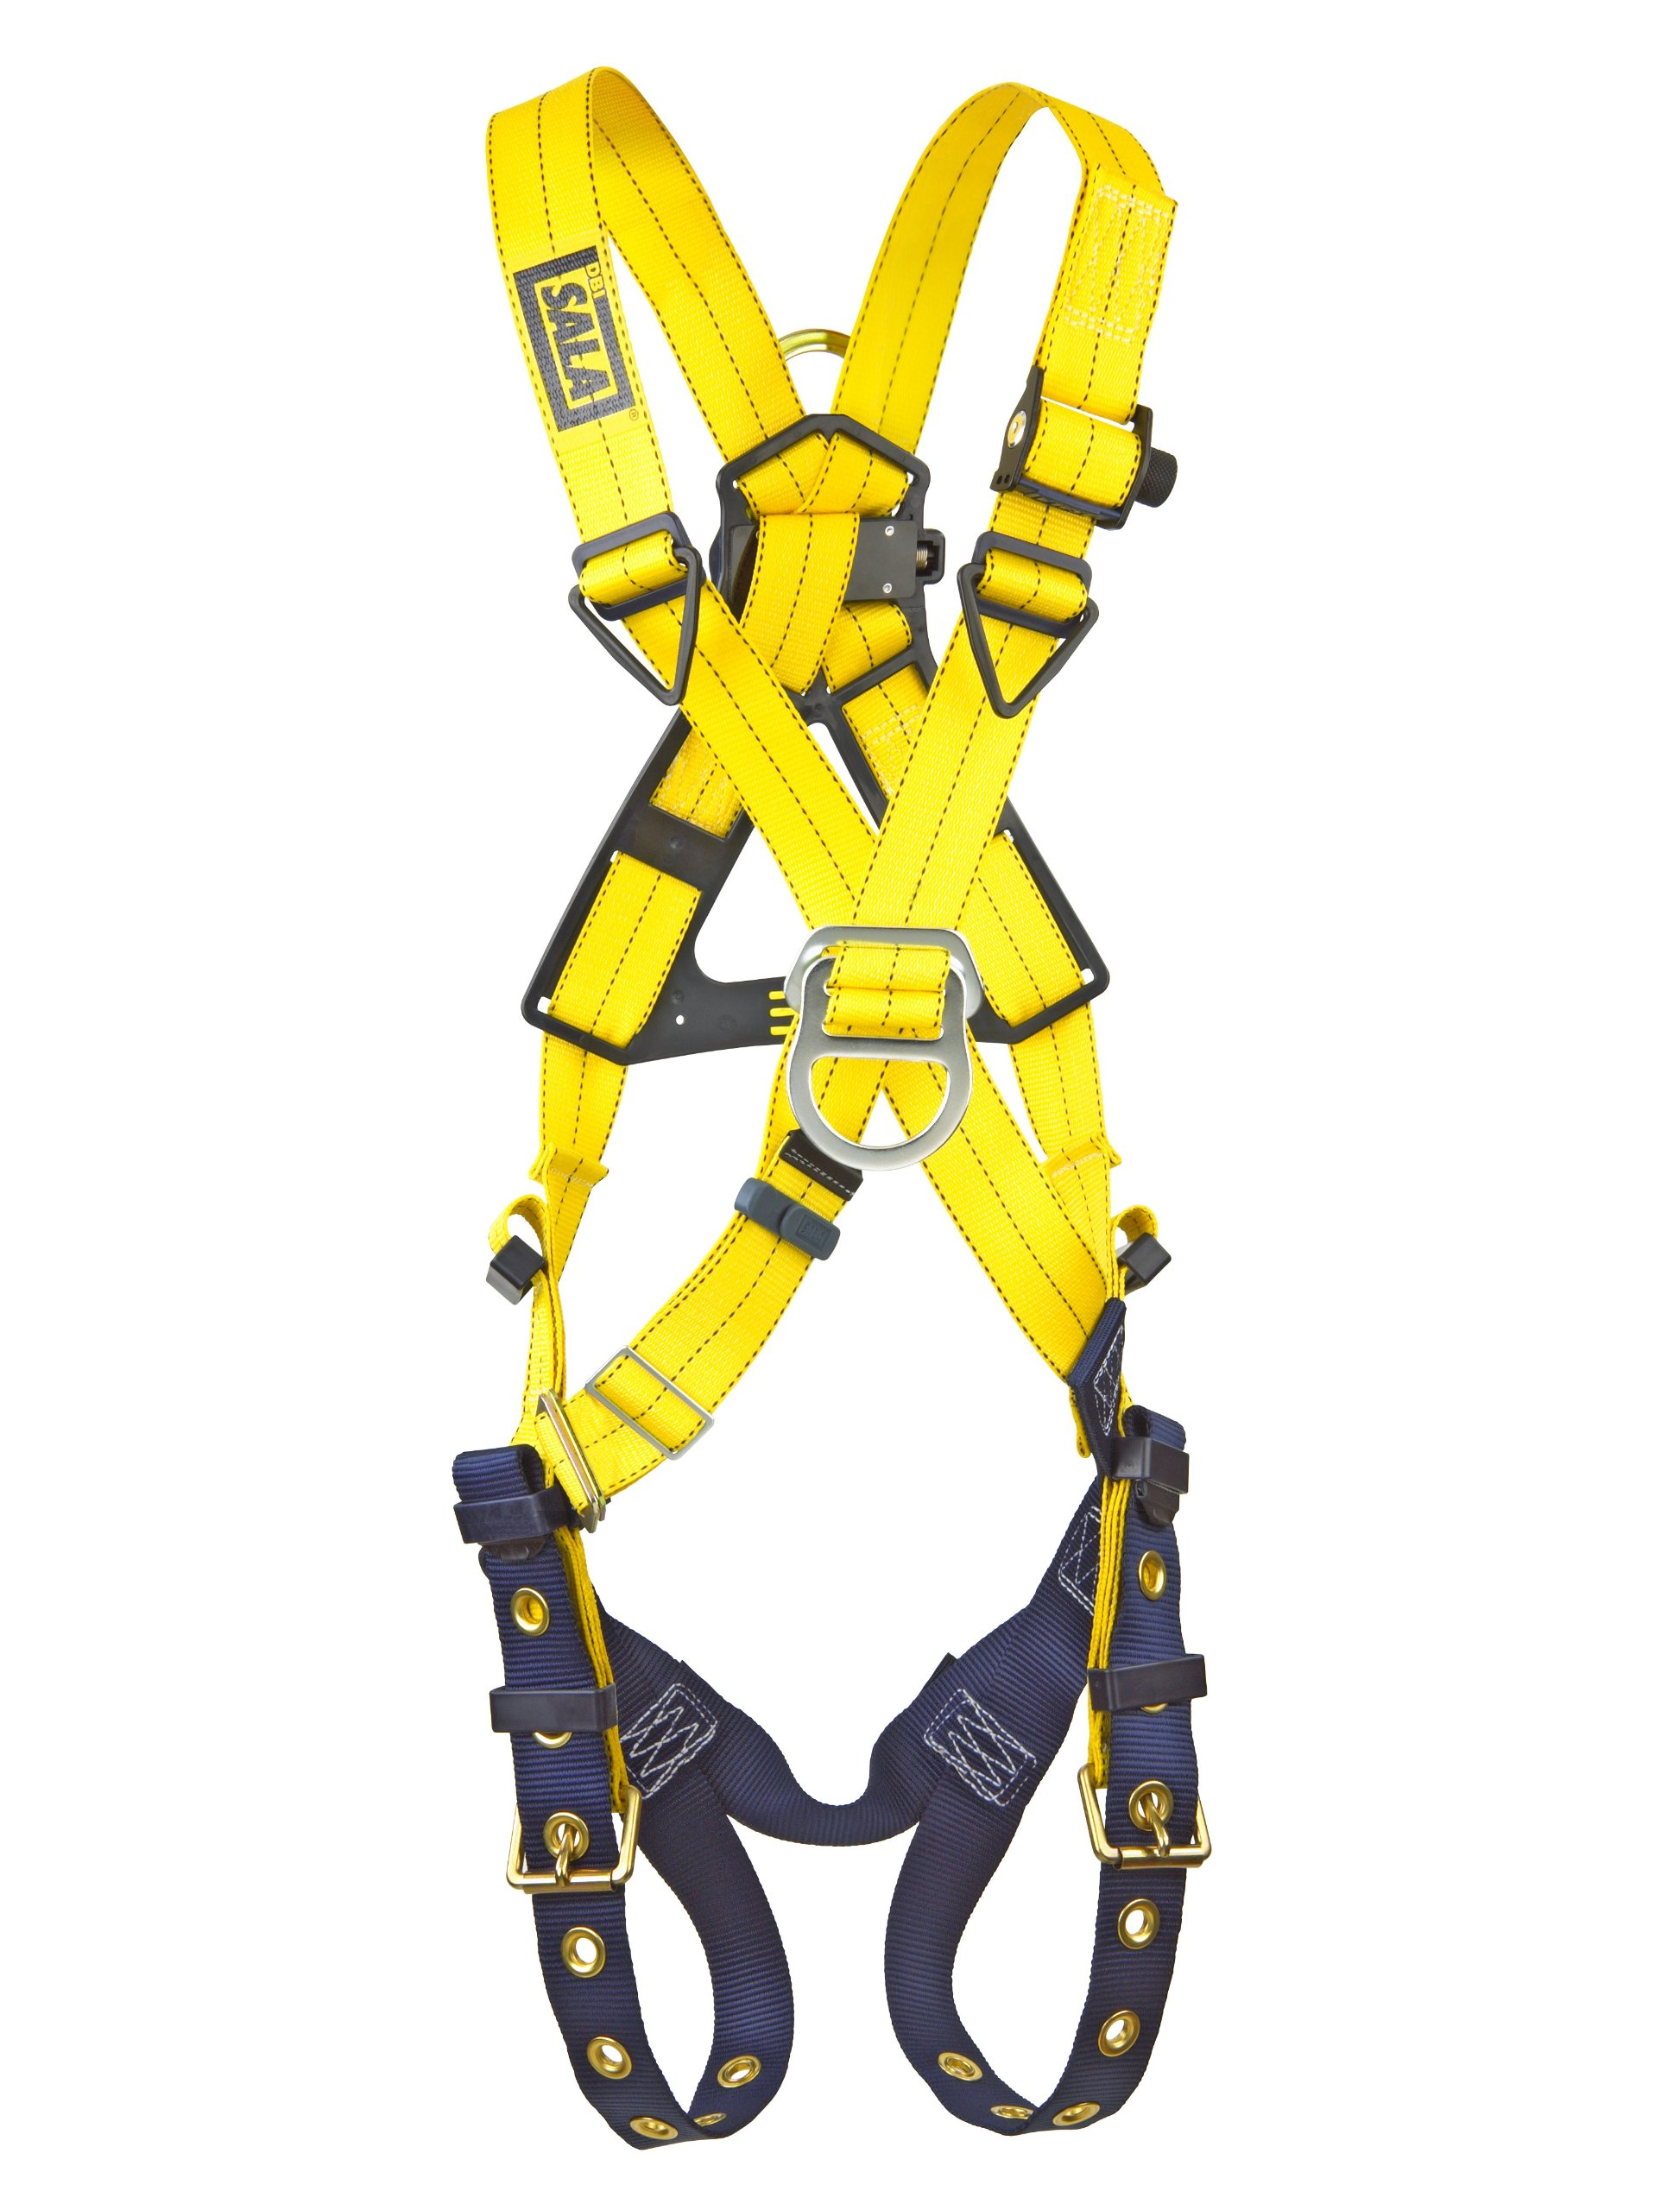 3M DBI-SALA Delta 1102950 Cross-Over Style Harness, Front and Back D-Rings, Tongue Buckle Leg Straps, Universal, Navy/Yellow